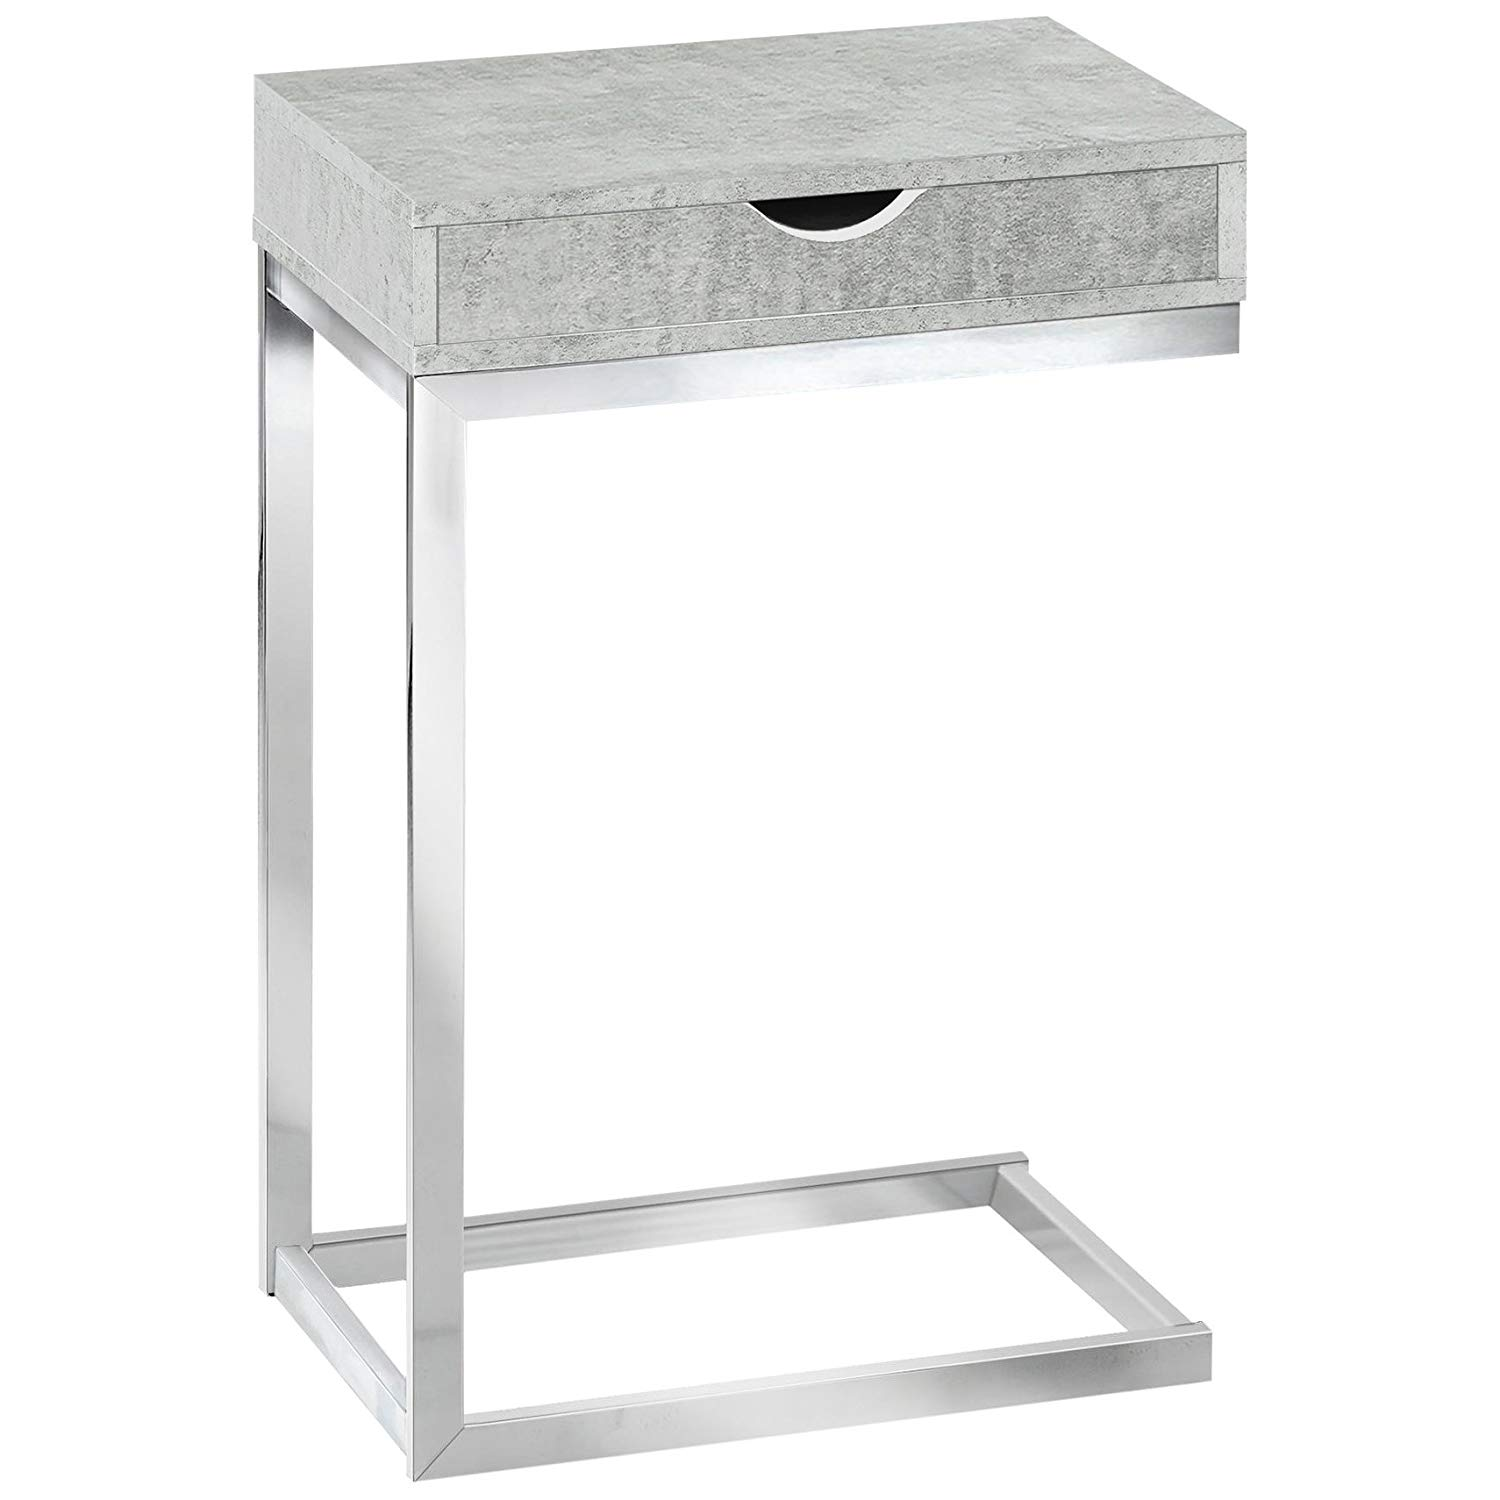 monarch specialties accent table with drawer dark gray chrome metal grey cement kitchen dining ikea storage boxes acrylic side wheels home design condo furniture toronto front